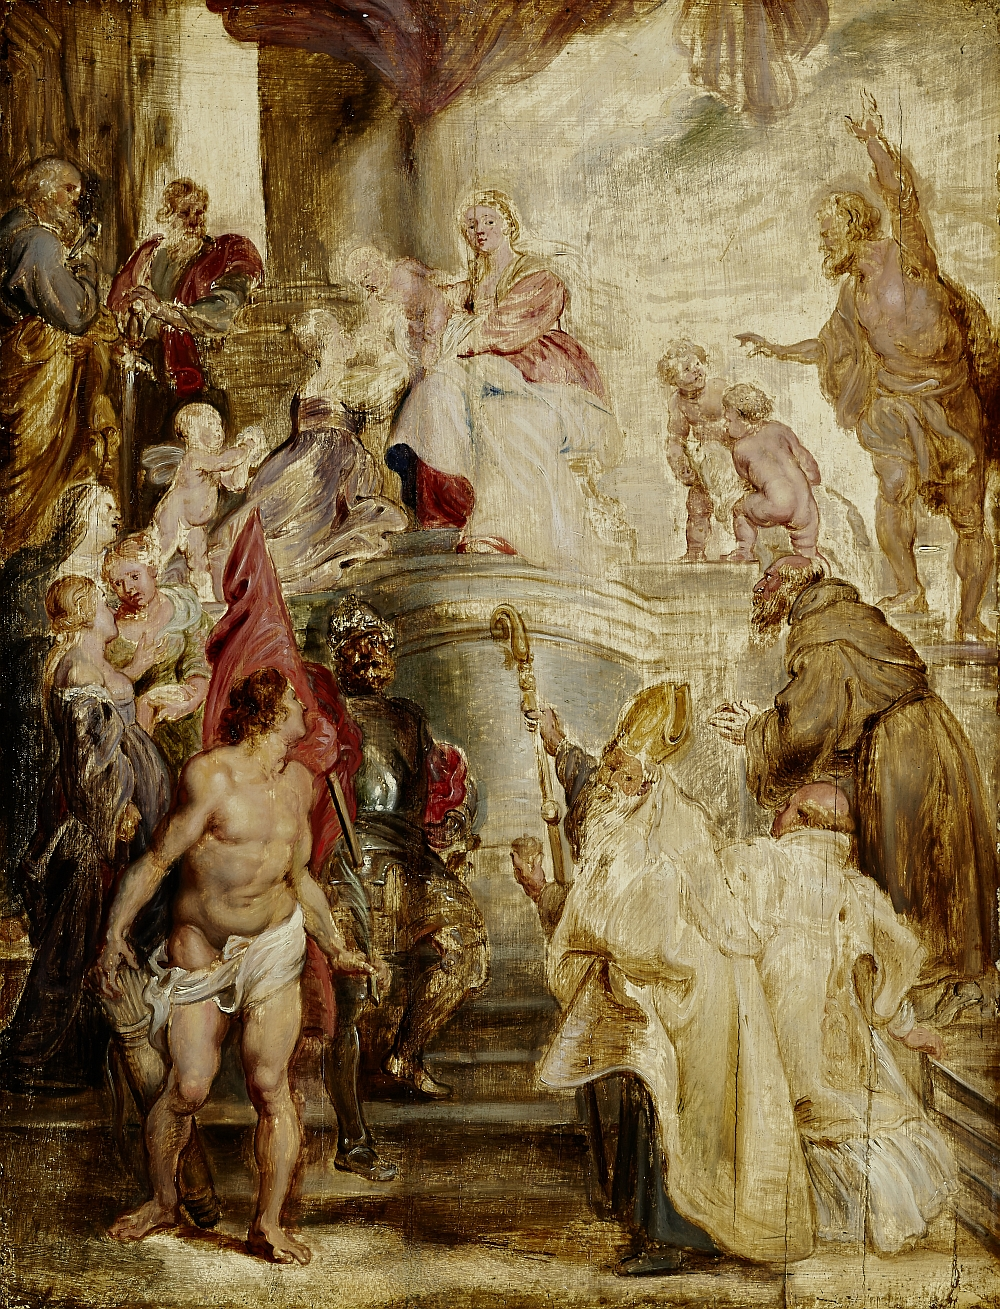 The Mystic Marriage of Saint Catherine, Peter Paul Rubens, 1628, oil on oak wood, inv. no. RO 0357; one of the designs for the high altarpiece in the Augustinian Church in Antwerp